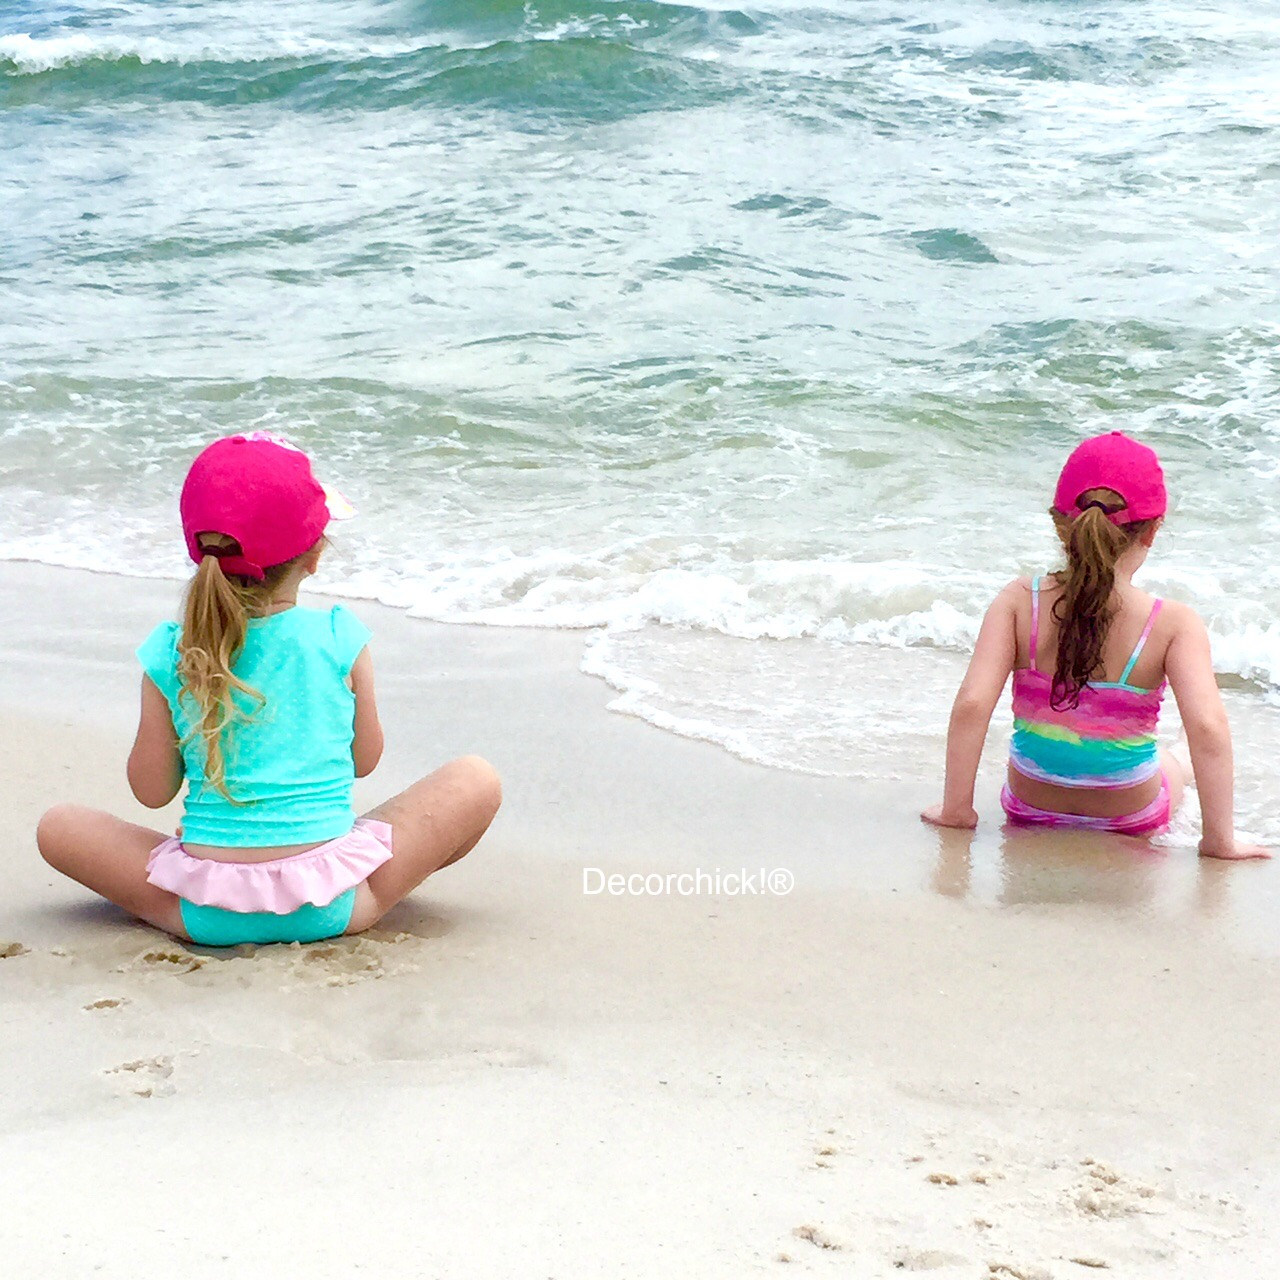 Babies at Beach | Decorchick!®